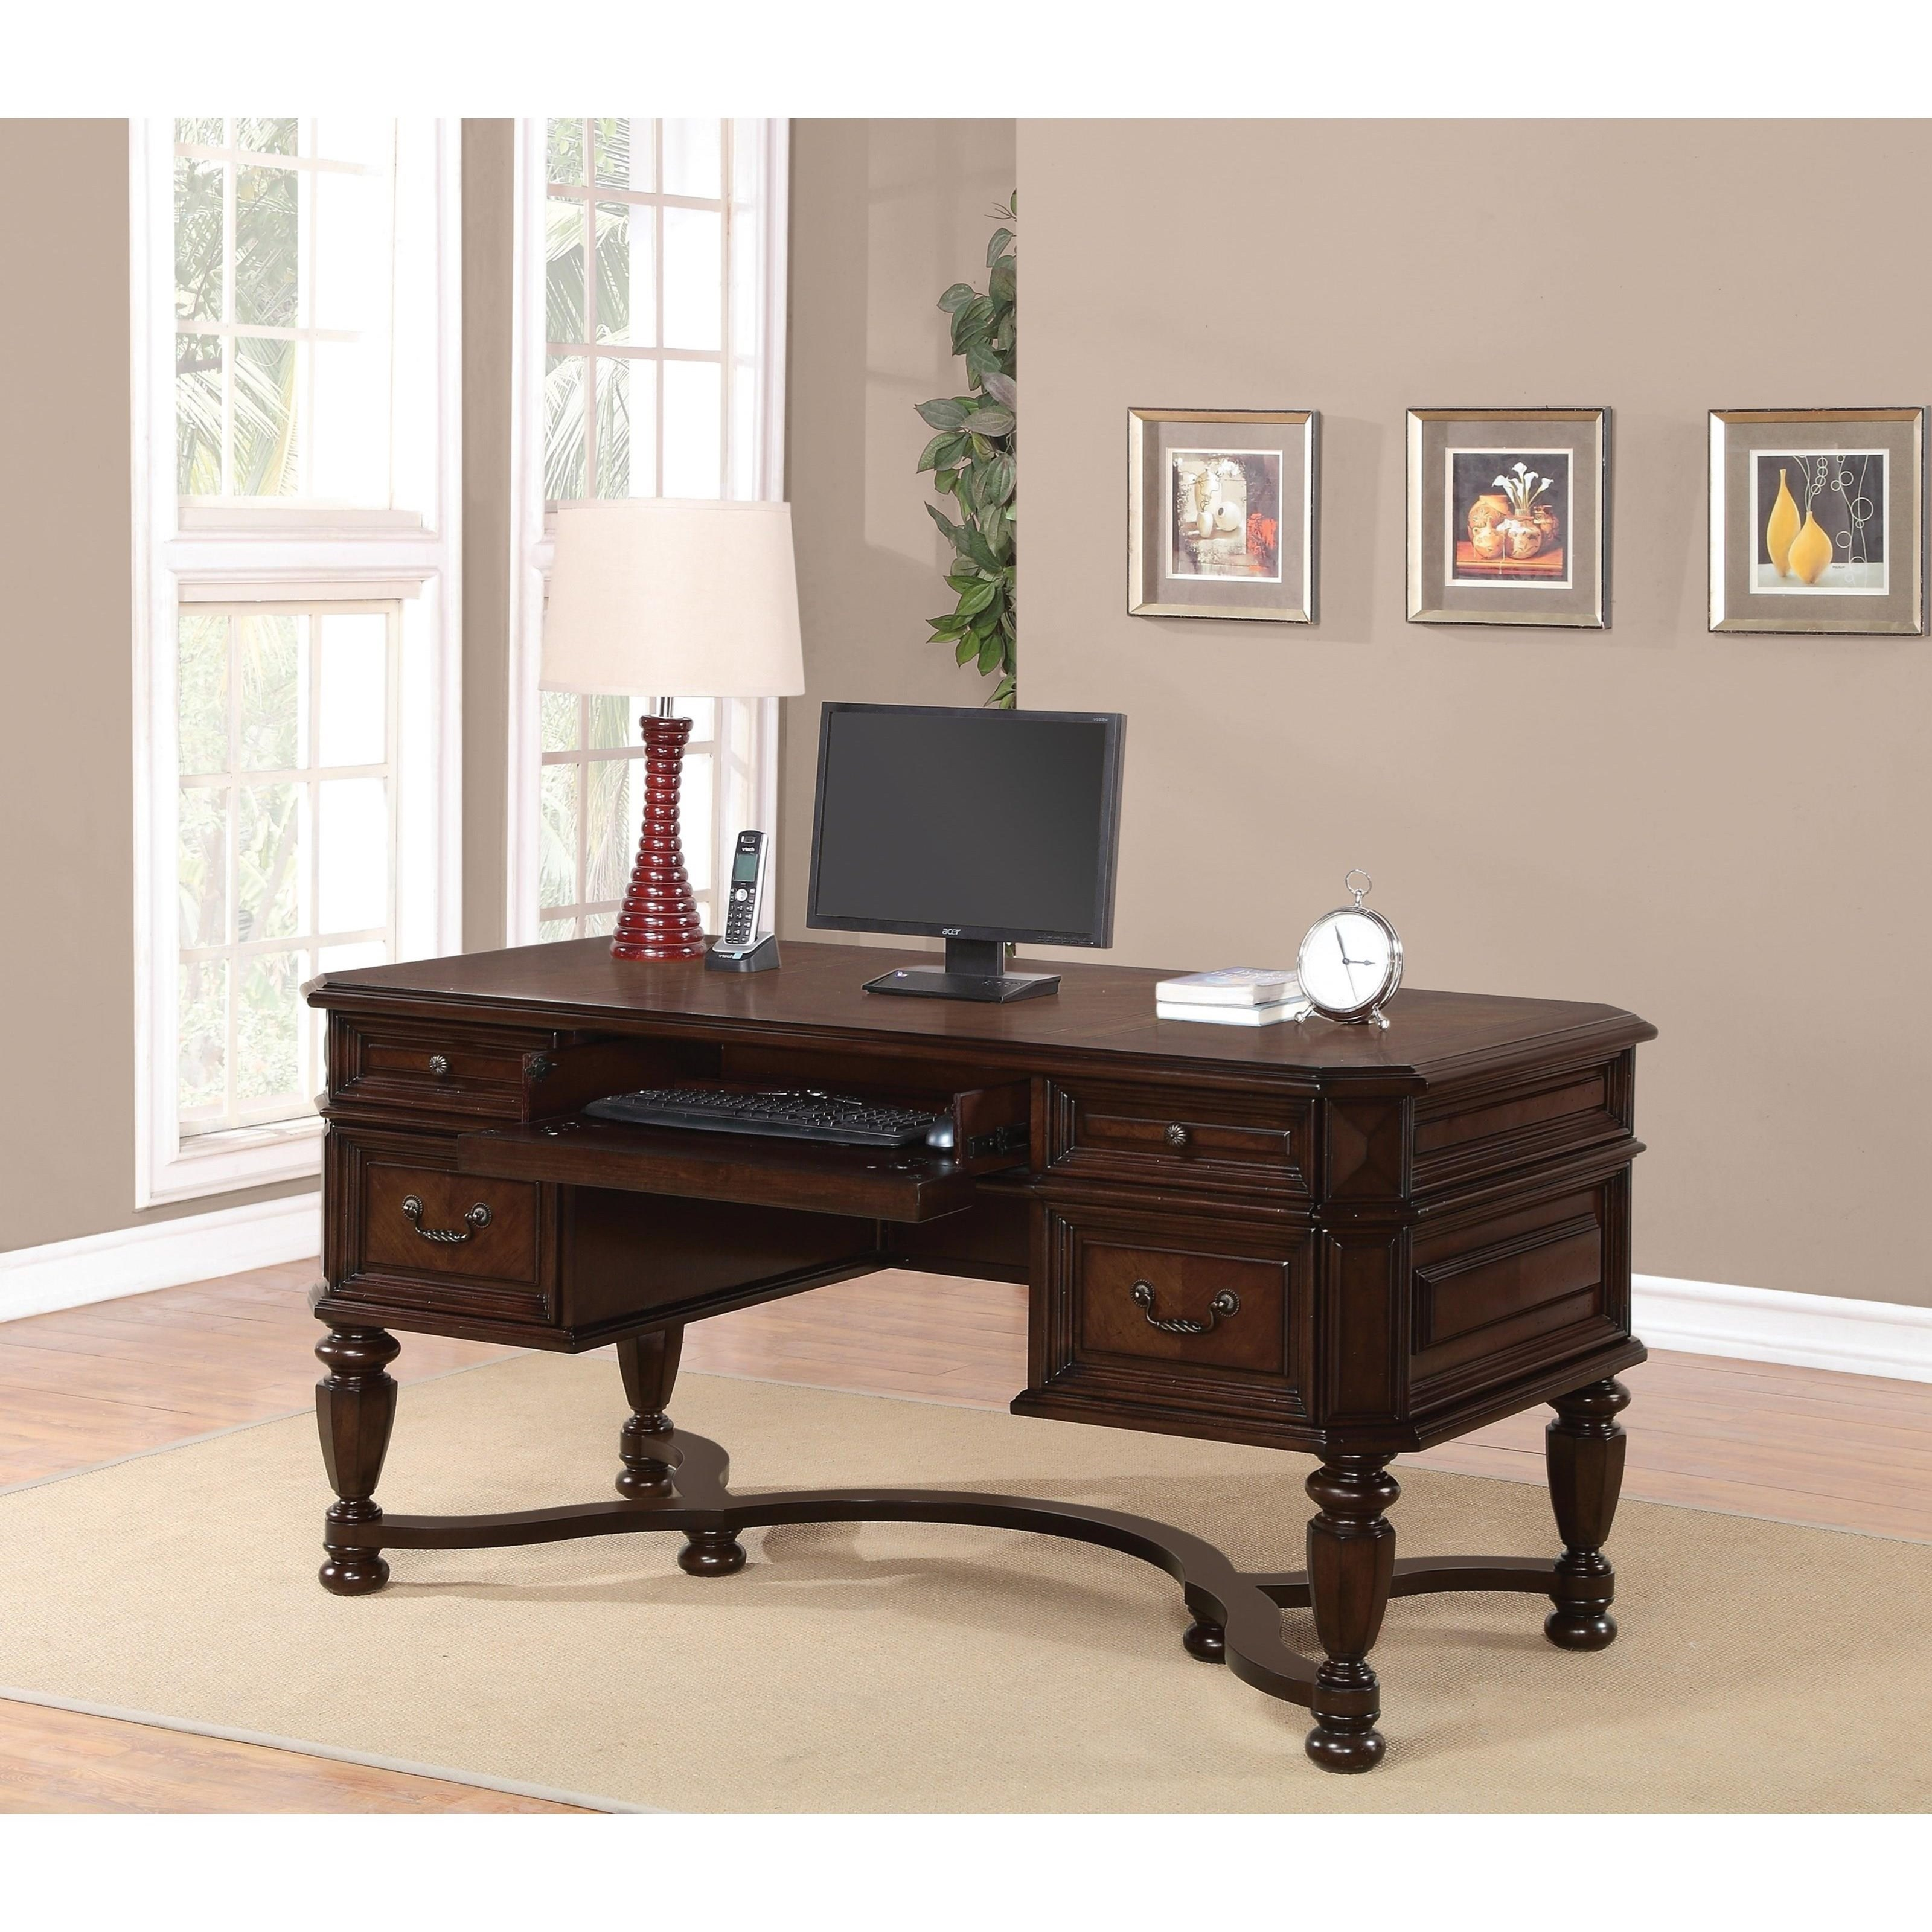 writing desk with keyboard drawer 60 writing desk in light metallic finish with keyboard drawer and two utility drawers.